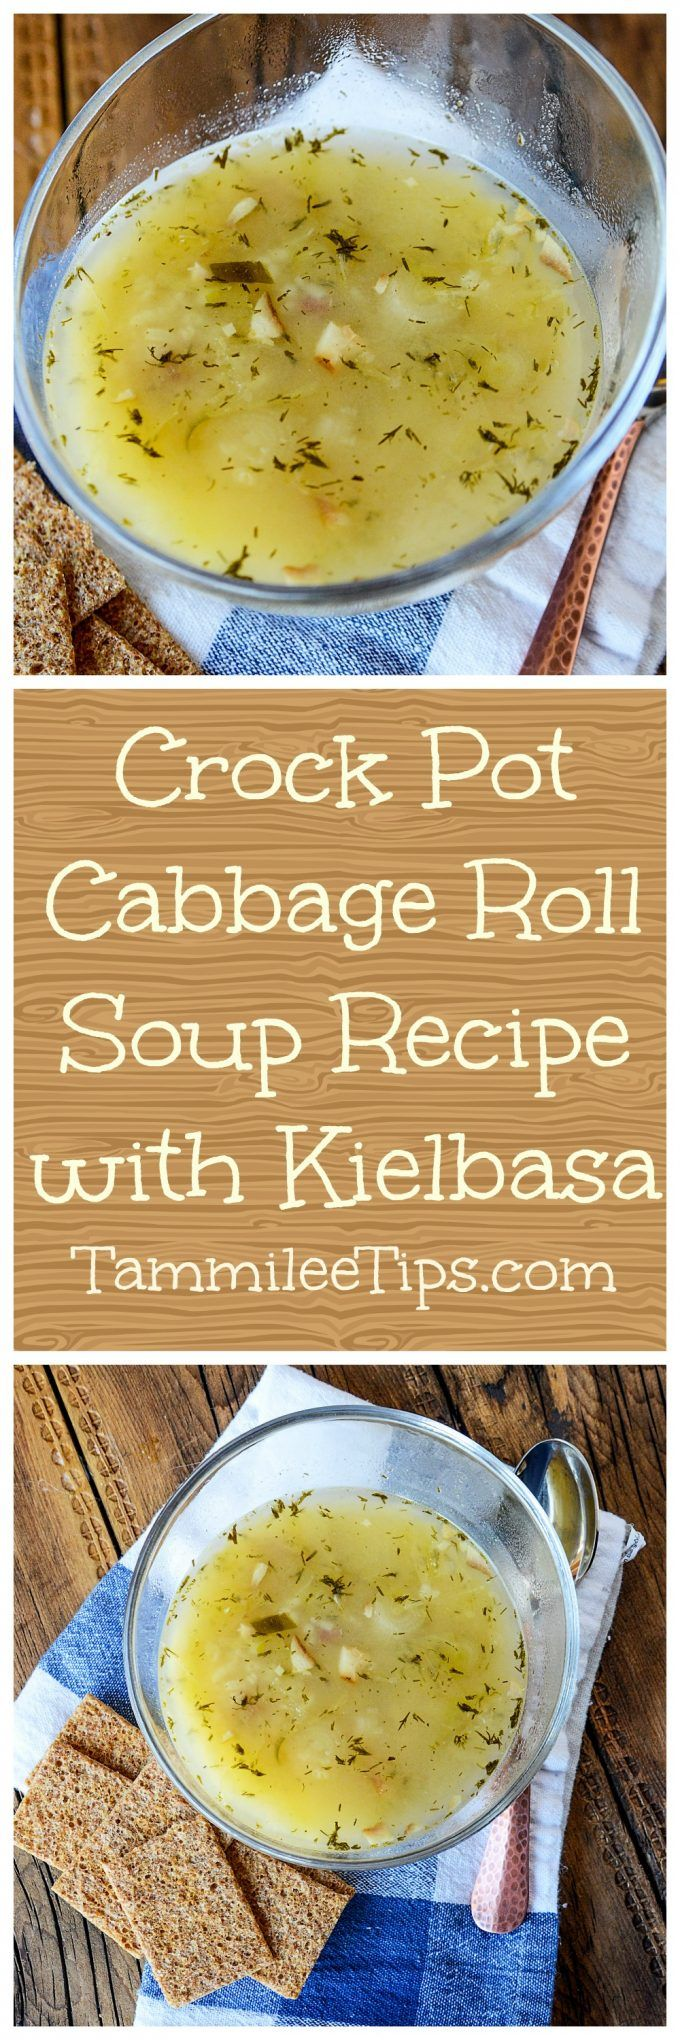 Crock Pot Cabbage Roll Soup Recipe with Kielbasa! This slow cooker soup recipe is so easy to make! Simple, healthy, you can easily add in potatoes and sausage. The perfect comfort foods with bacon and rice! Great for dinners, easy meals, and leftovers!  via @tammileetips